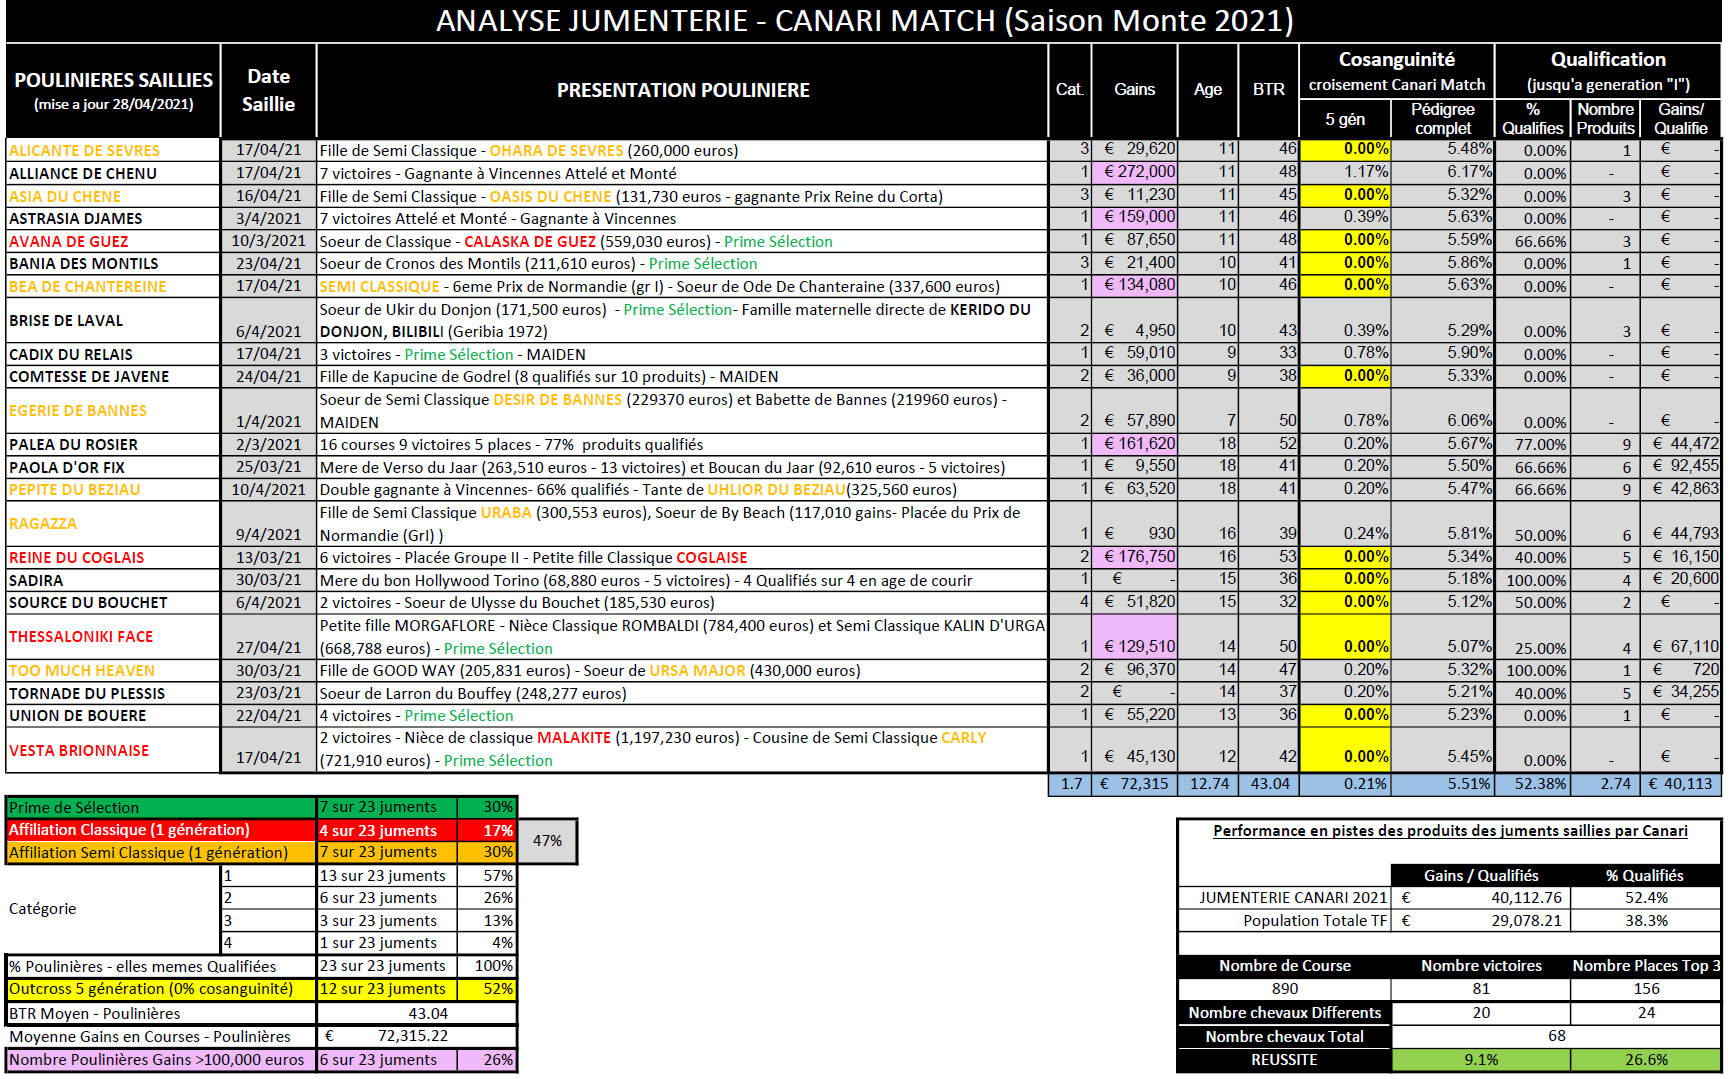 AnalyseJumenterie2021-CANARIMATCH_2021-05-01.png